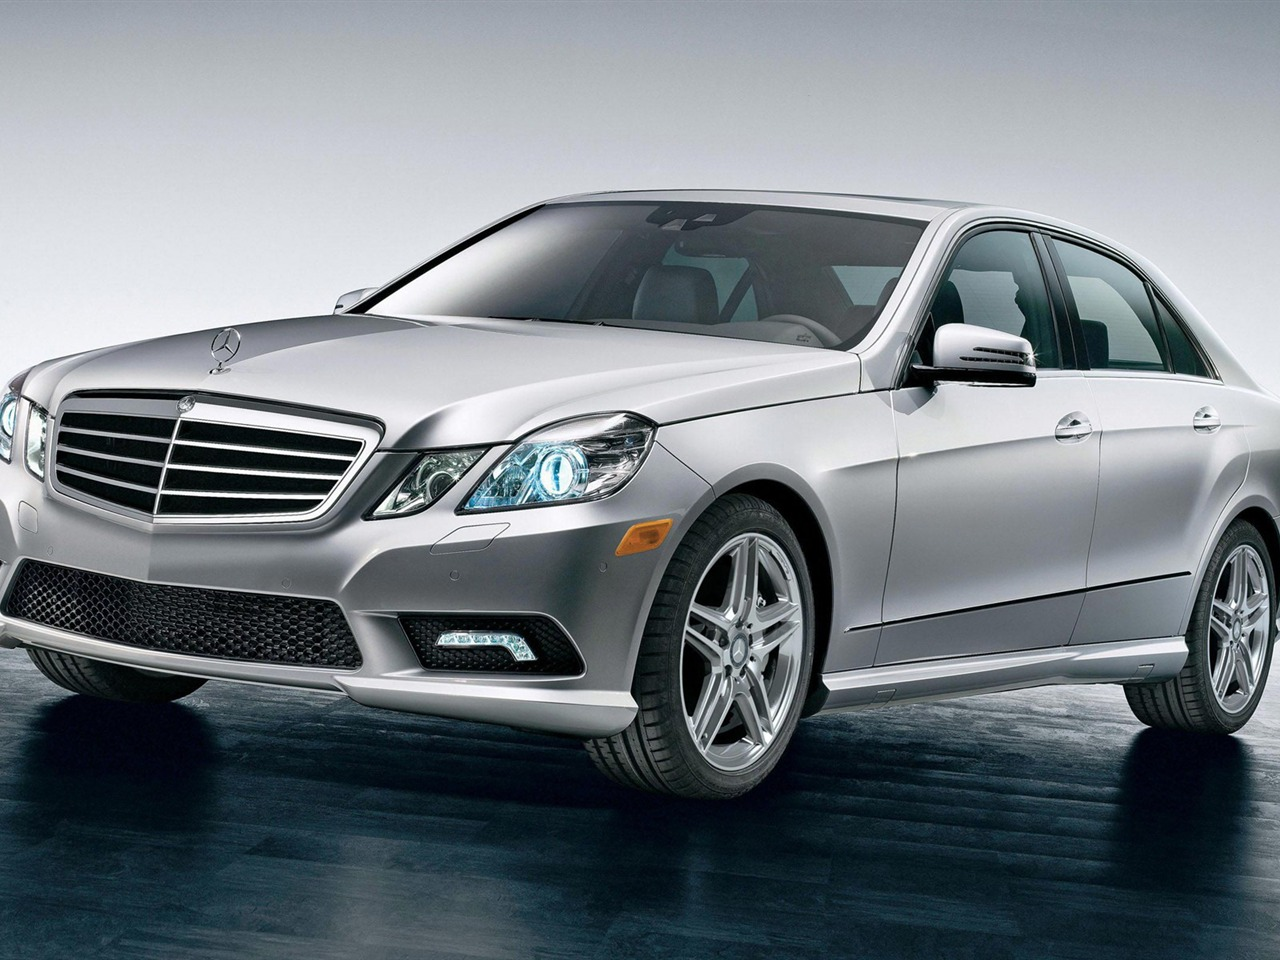 Front face 2012 mercedes benz e class saloon hd wallpaper view for 2012 mercedes benz e class e350